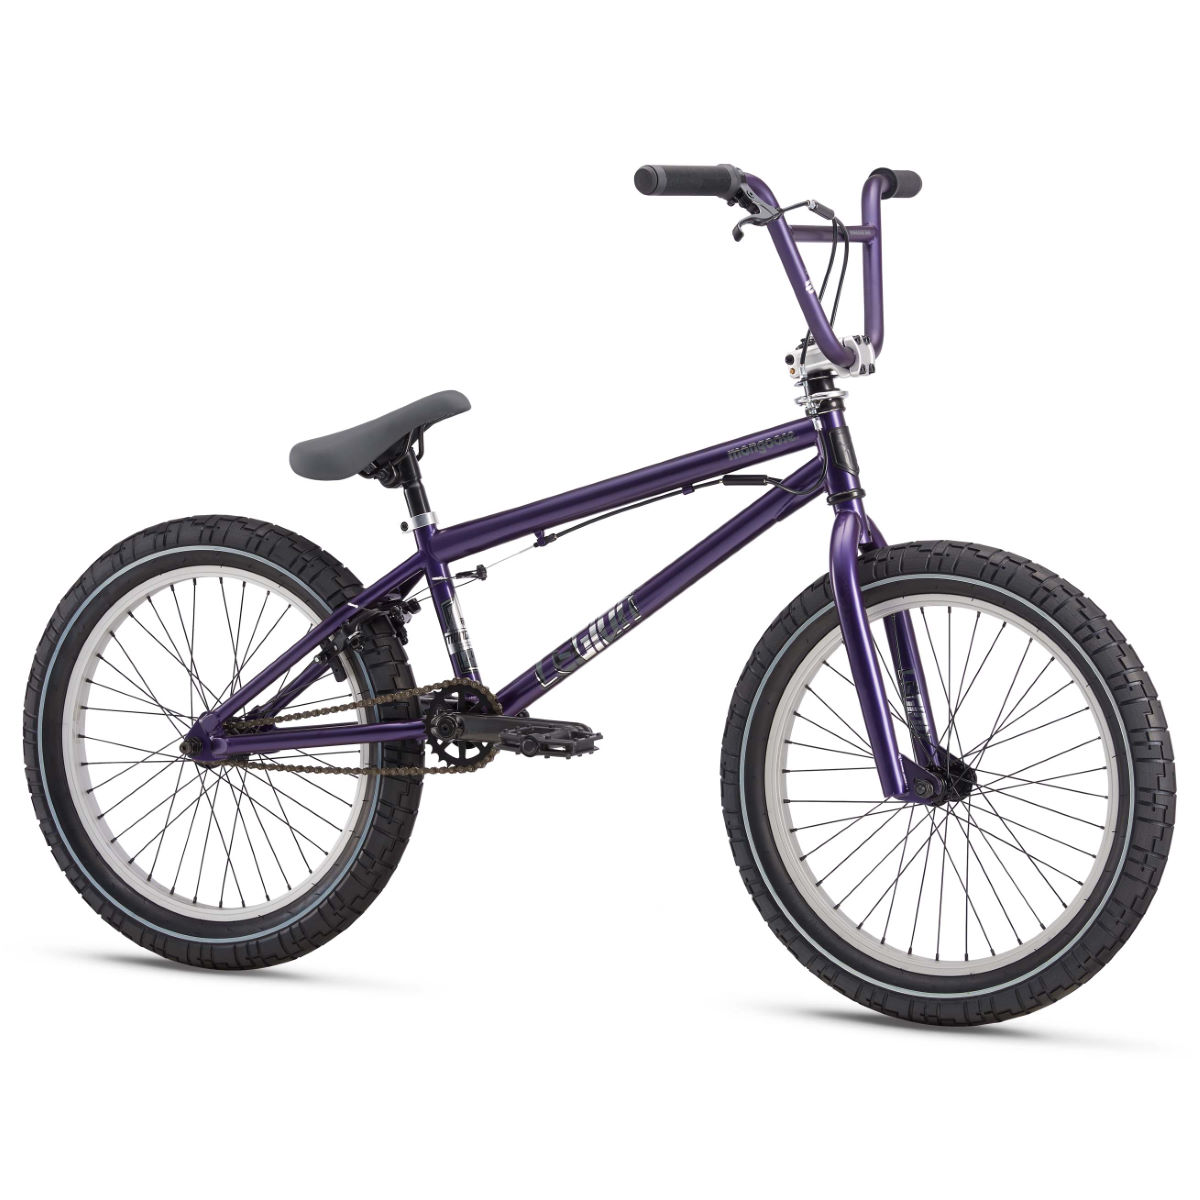 Top 10 cheapest Mongoose bmx bike prices - best UK deals ...